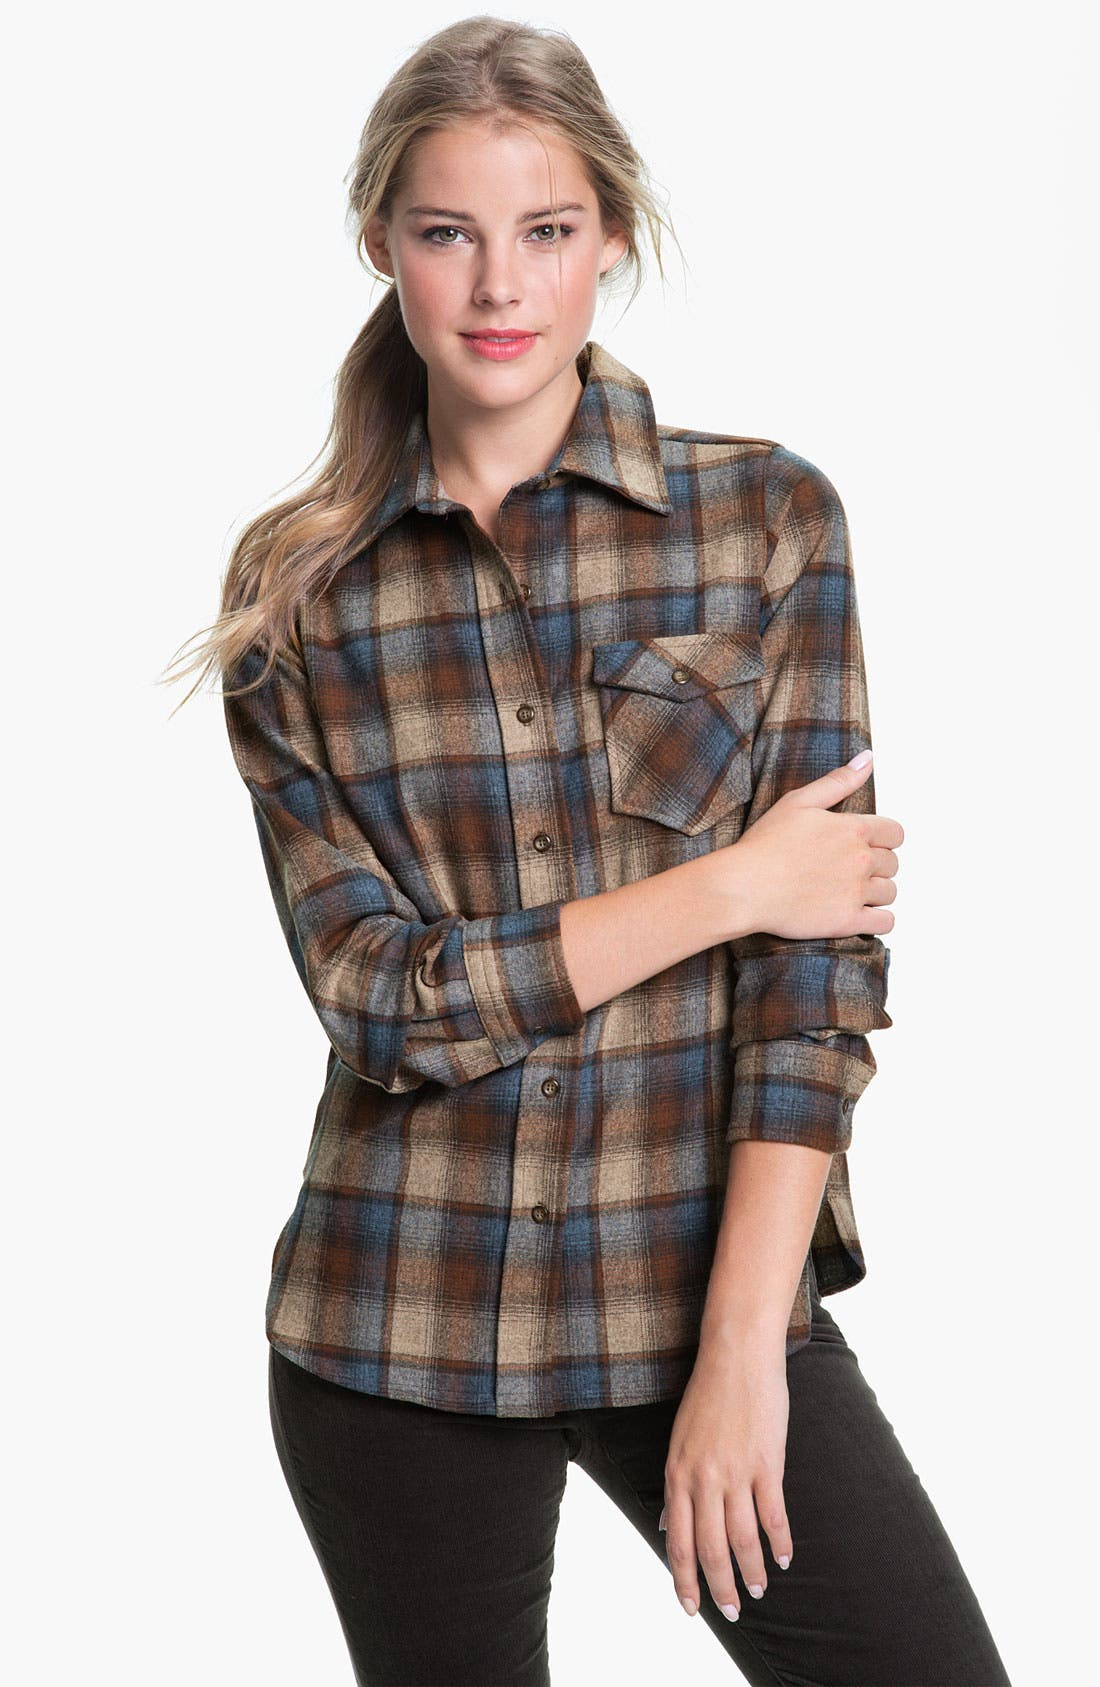 Alternate Image 1 Selected - Pendleton Plaid Shirt (Online Exclusive)